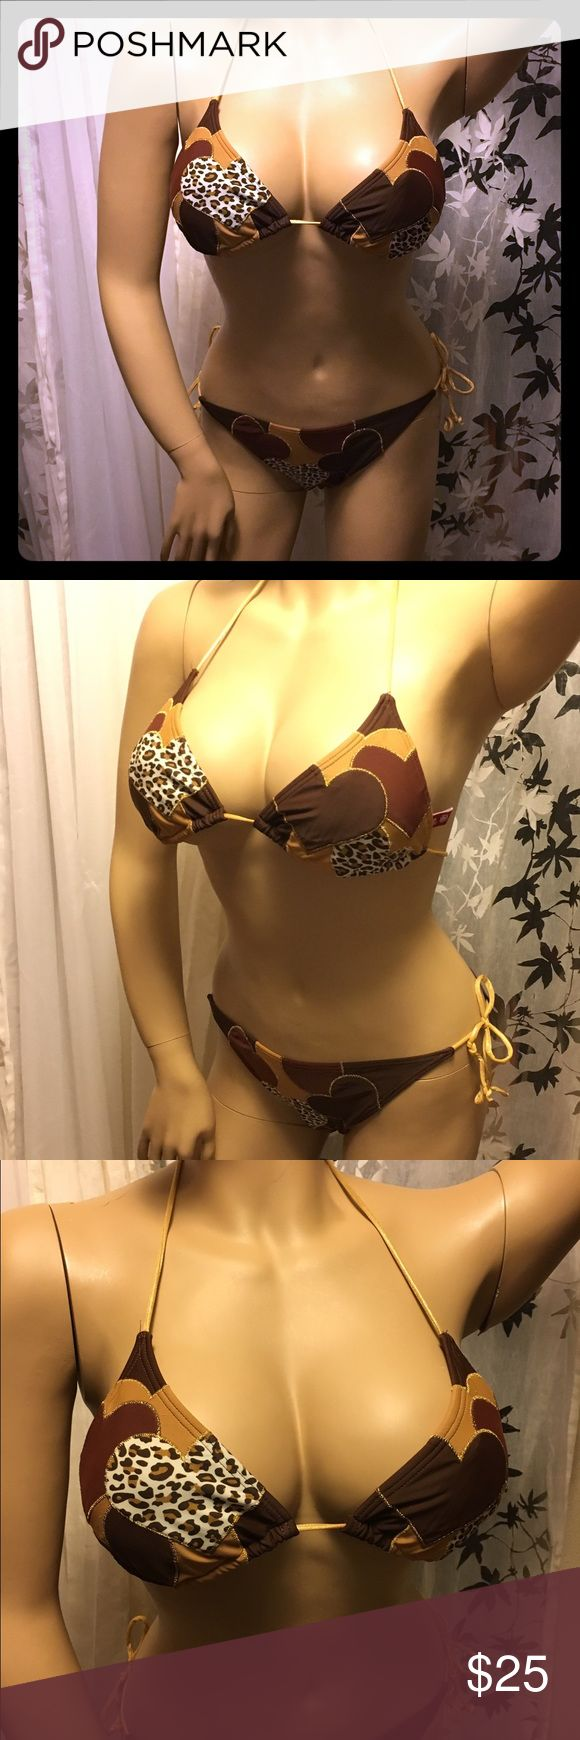 Guess Animal Print String Bikini Brown tan and gold animal print triangle string. Bikini Not padded. Fits b/ c comfortably. Both size small Guess Swim Bikinis